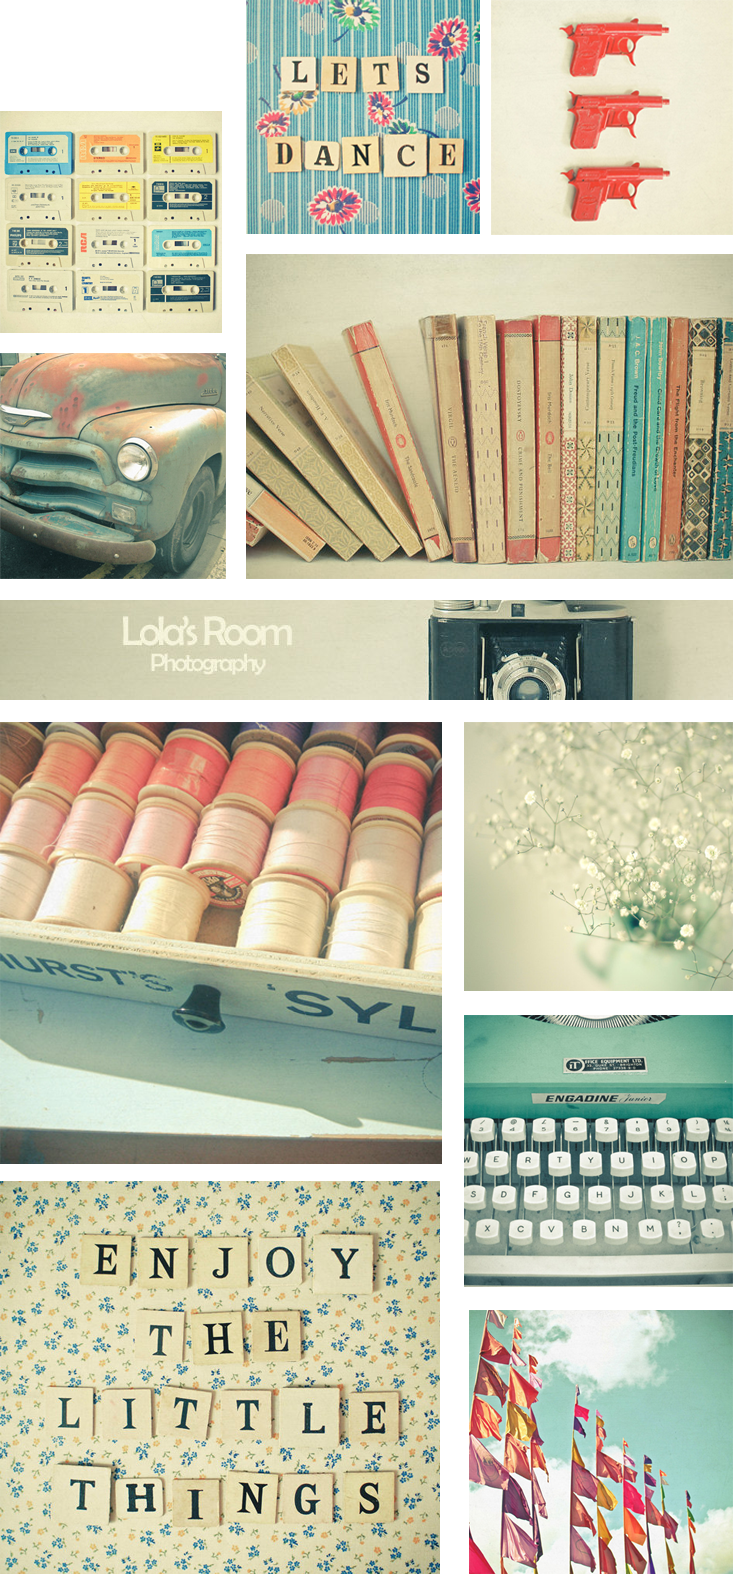 lolas-room-etsy-shop-feature